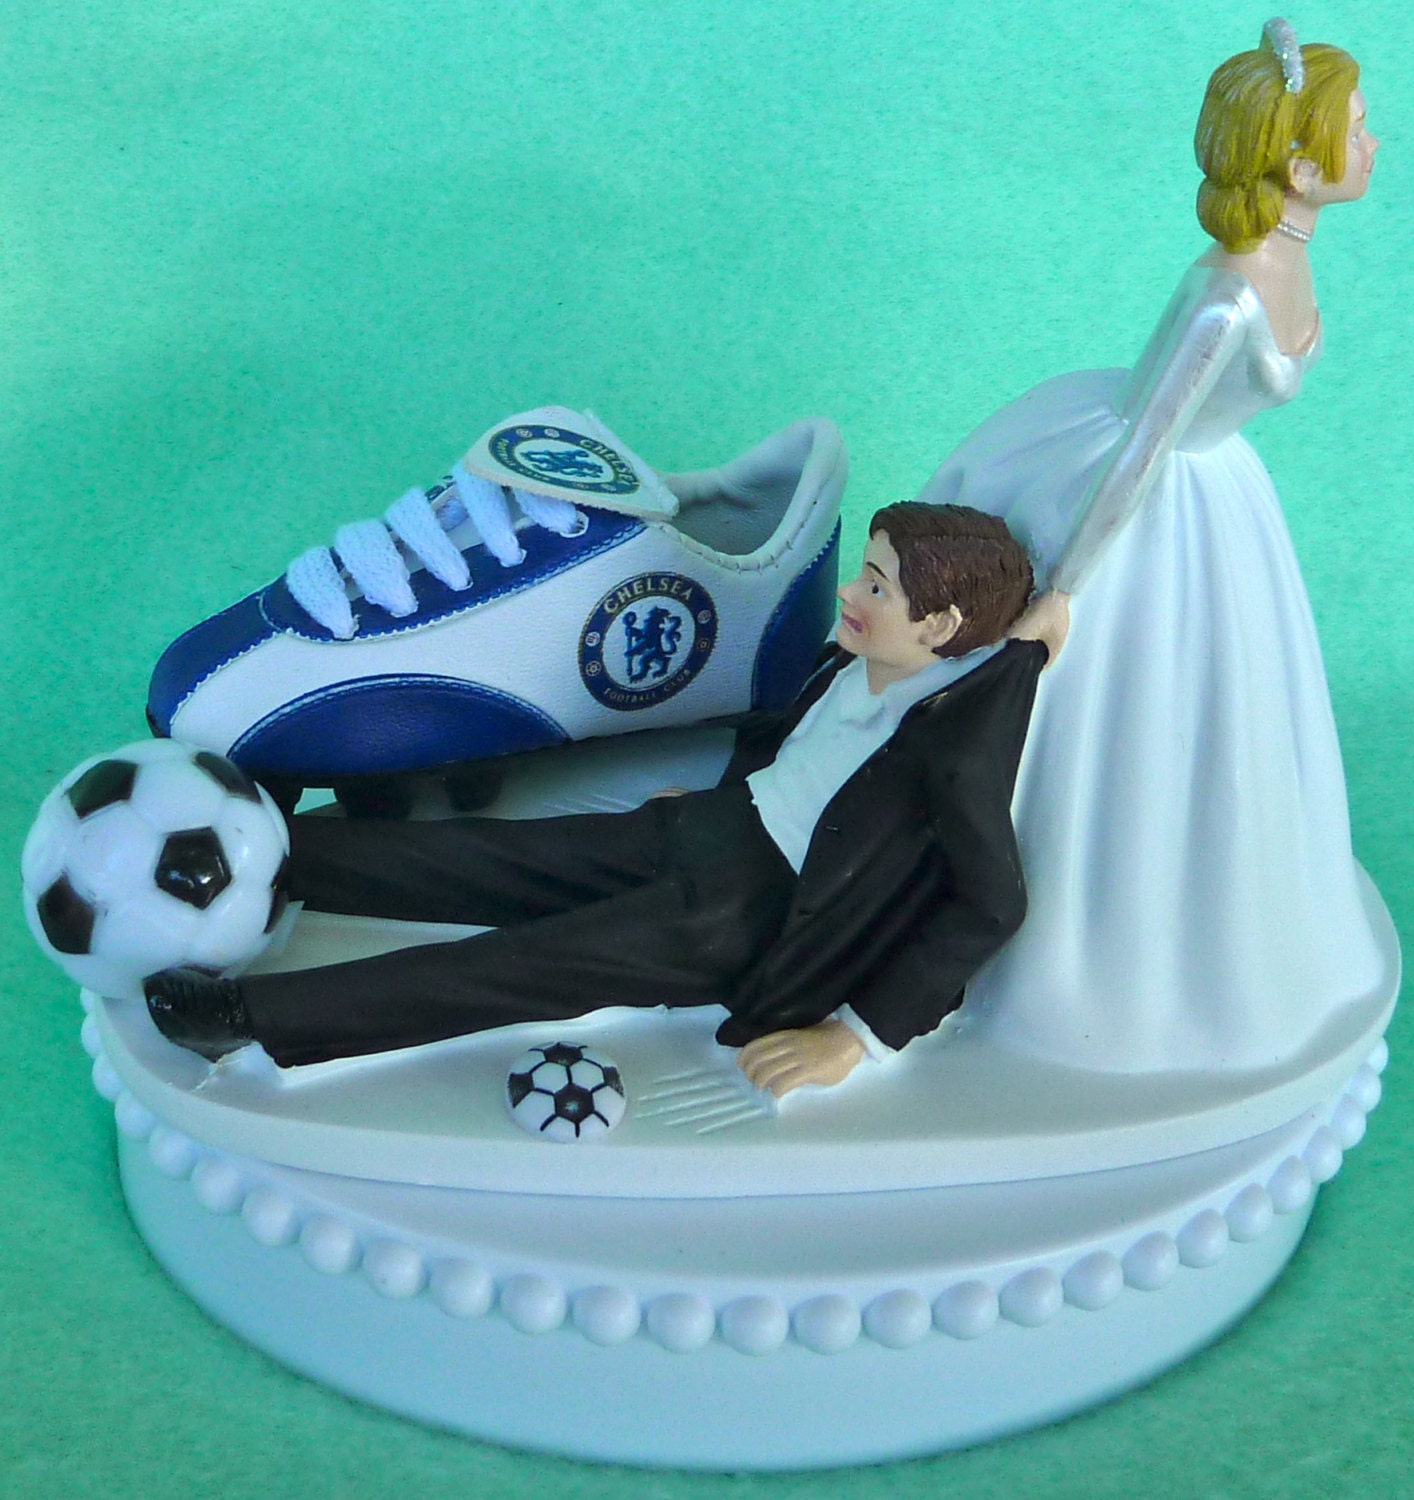 football themed wedding cakes wedding cake topper chelsea football club fc soccer themed 14394